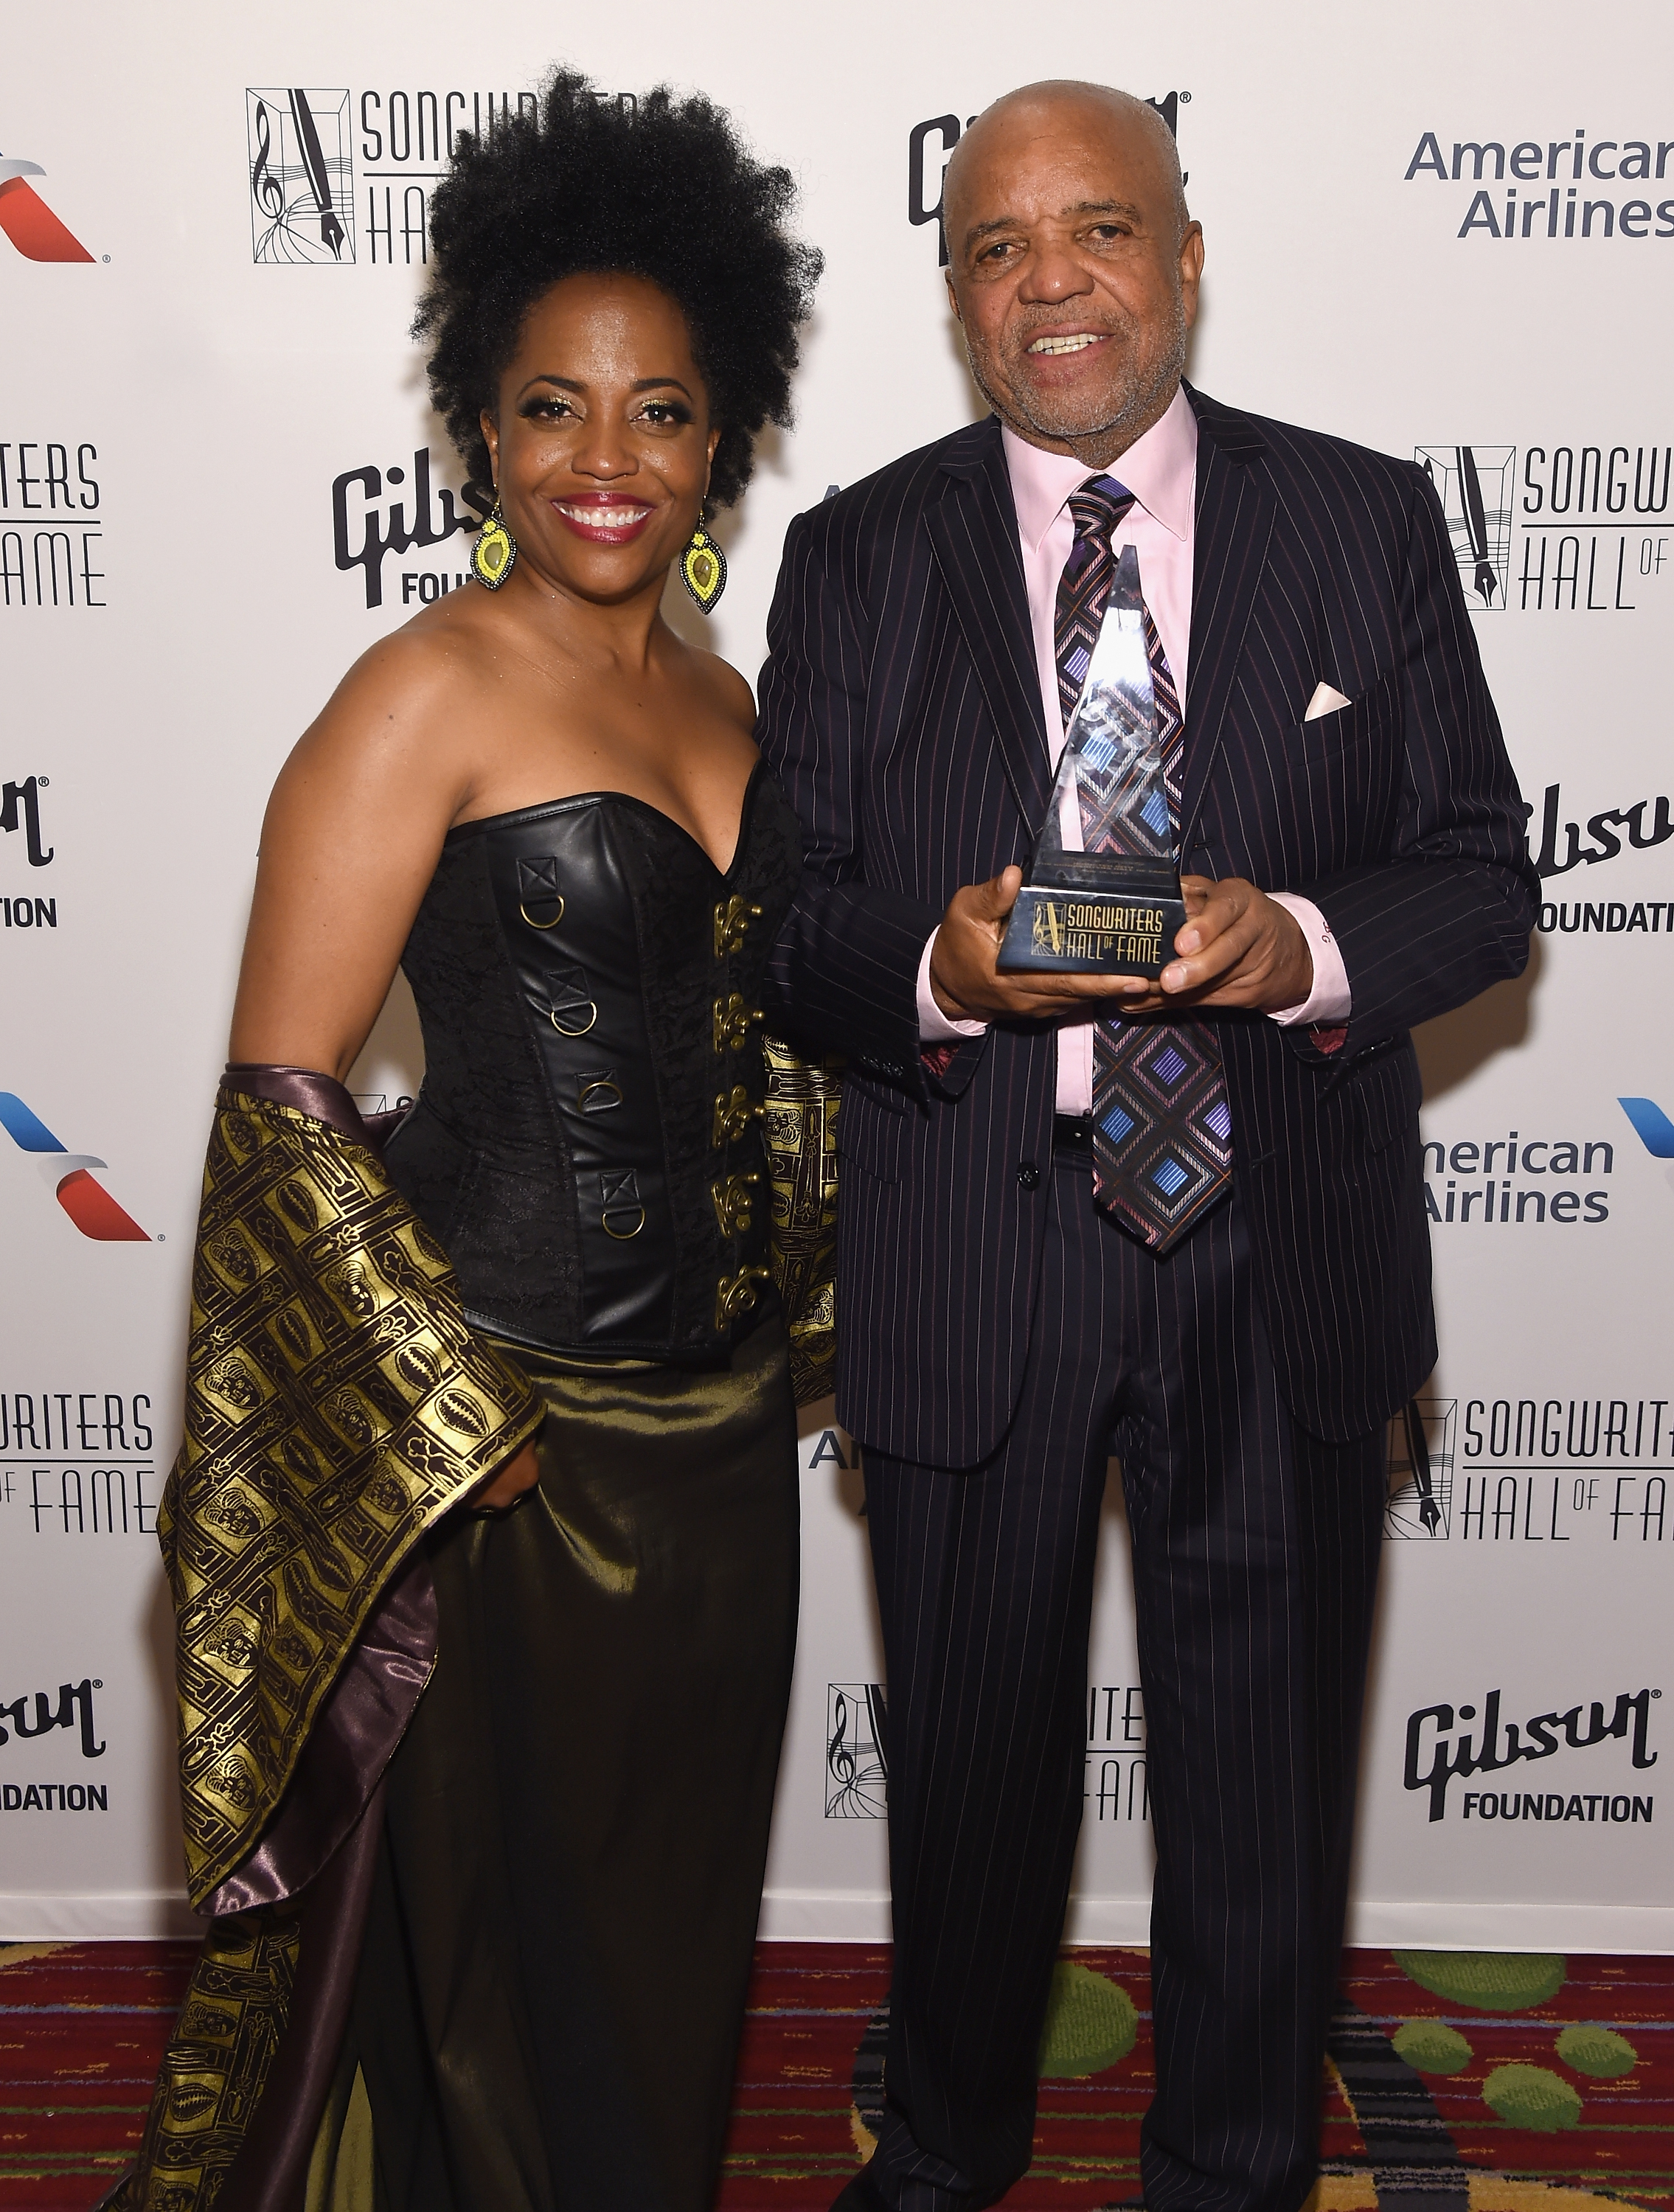 NEW YORK, NY - JUNE 15:  Rhonda Ross Kendrick poses with 2017 Inductee Berry Gordy baackstage at the Songwriters Hall Of Fame 48th Annual Induction and Awards at New York Marriott Marquis Hotel on June 15, 2017 in New York City.  (Photo by Larry Busacca/Getty Images for Songwriters Hall Of Fame) *** Local Caption *** Berry Gordy; Rhonda Ross Kendrick